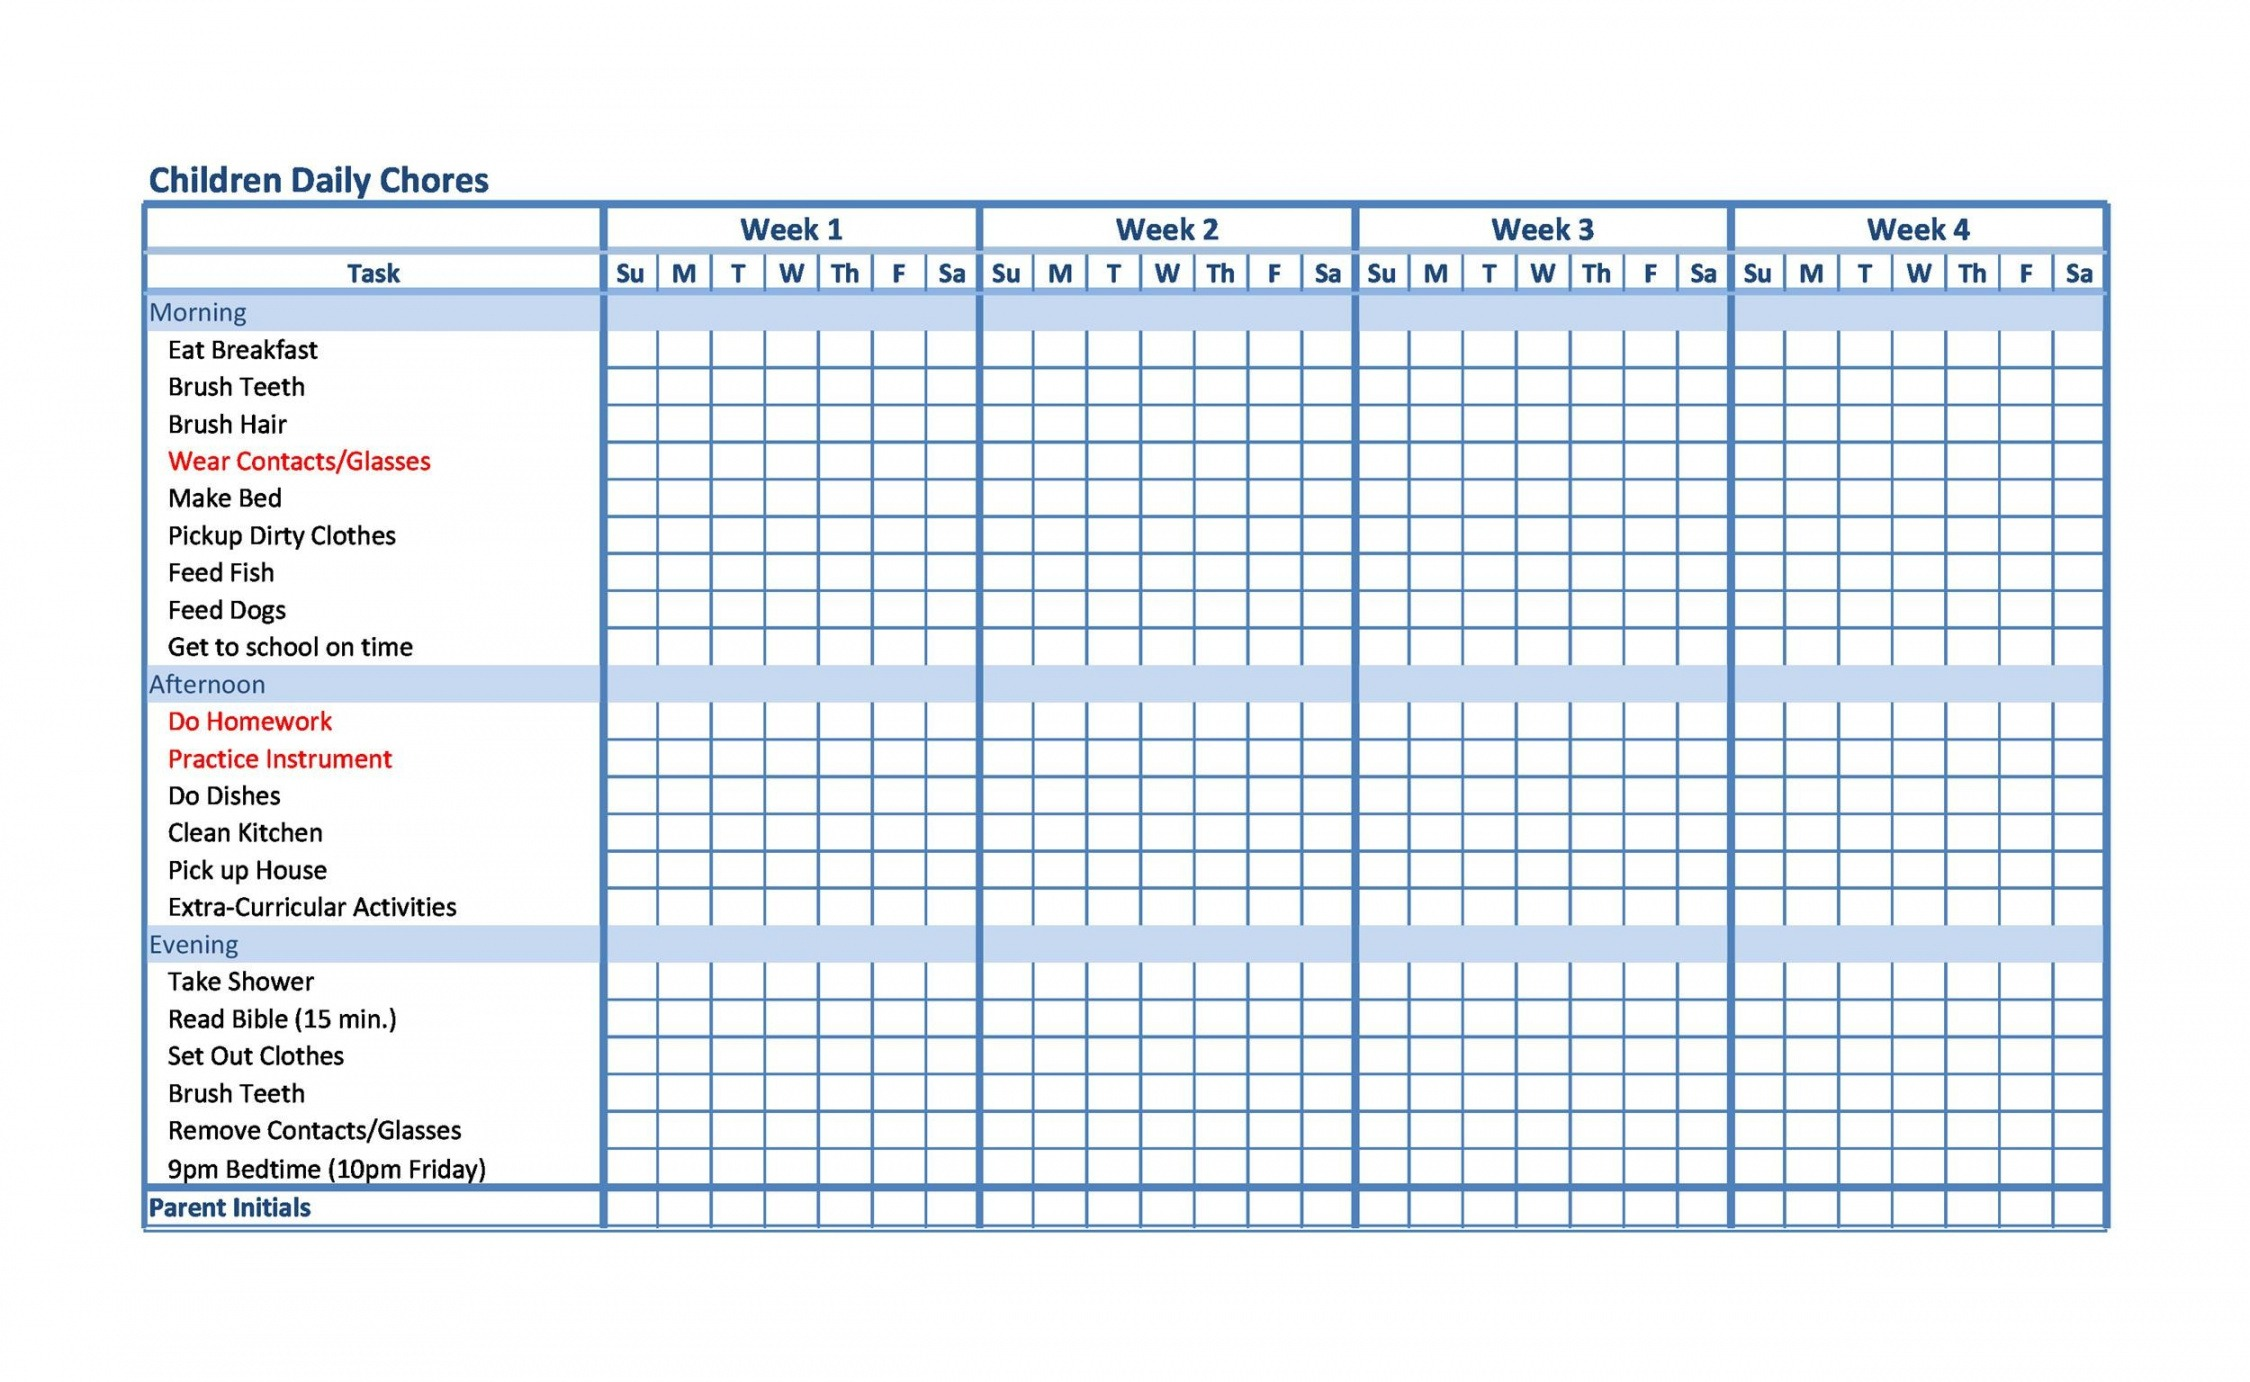 Free Chores List Template For Kids Excel Example